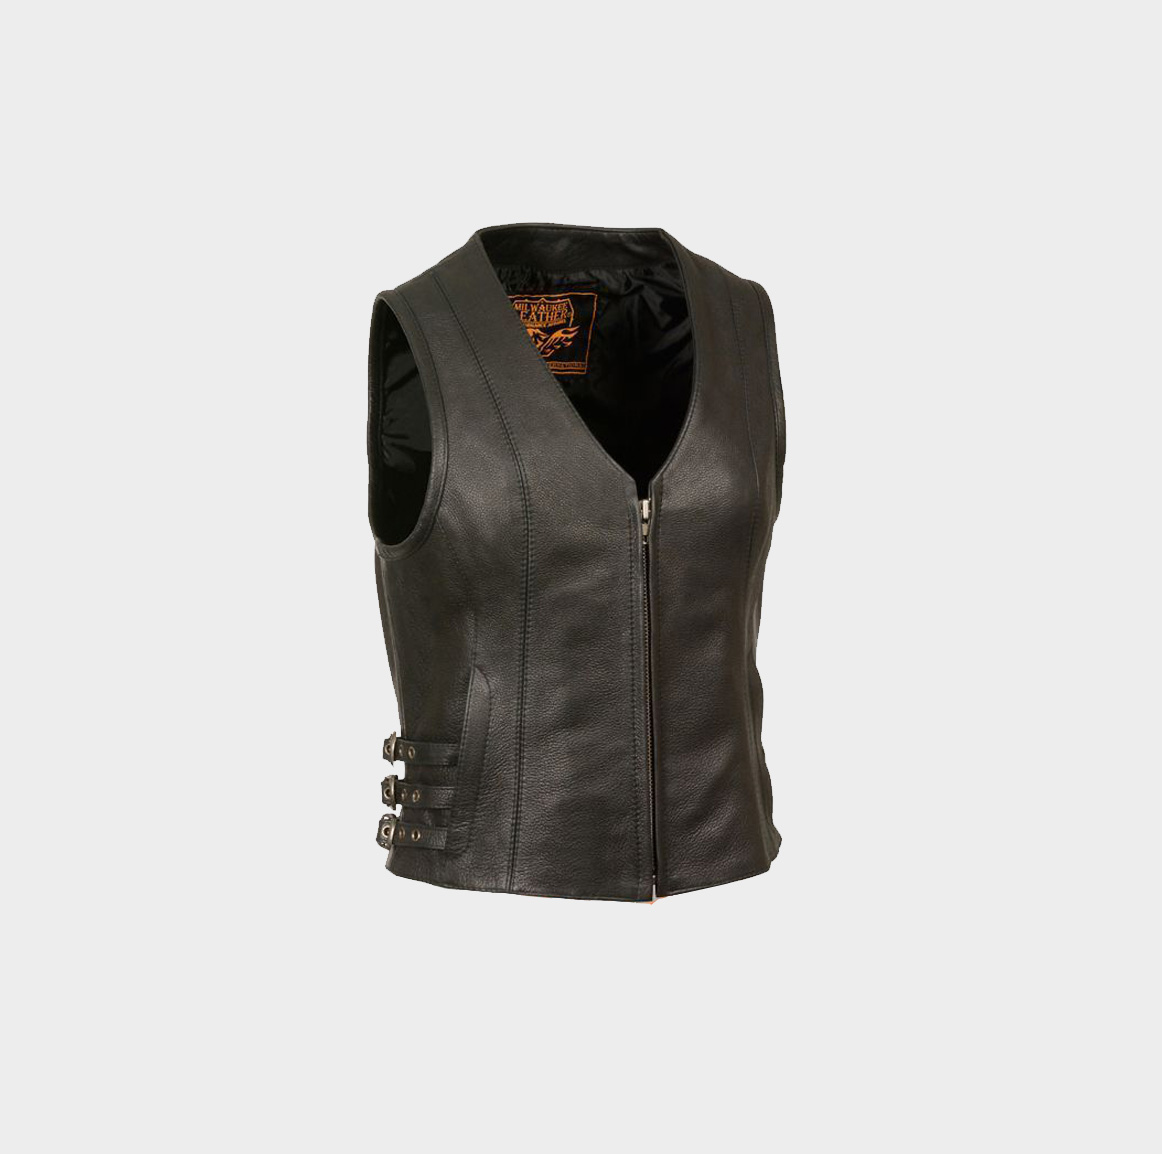 Ladies Zipper Front Black Side Lace Leather Vest w// Zippered Pockets Gun Pockets